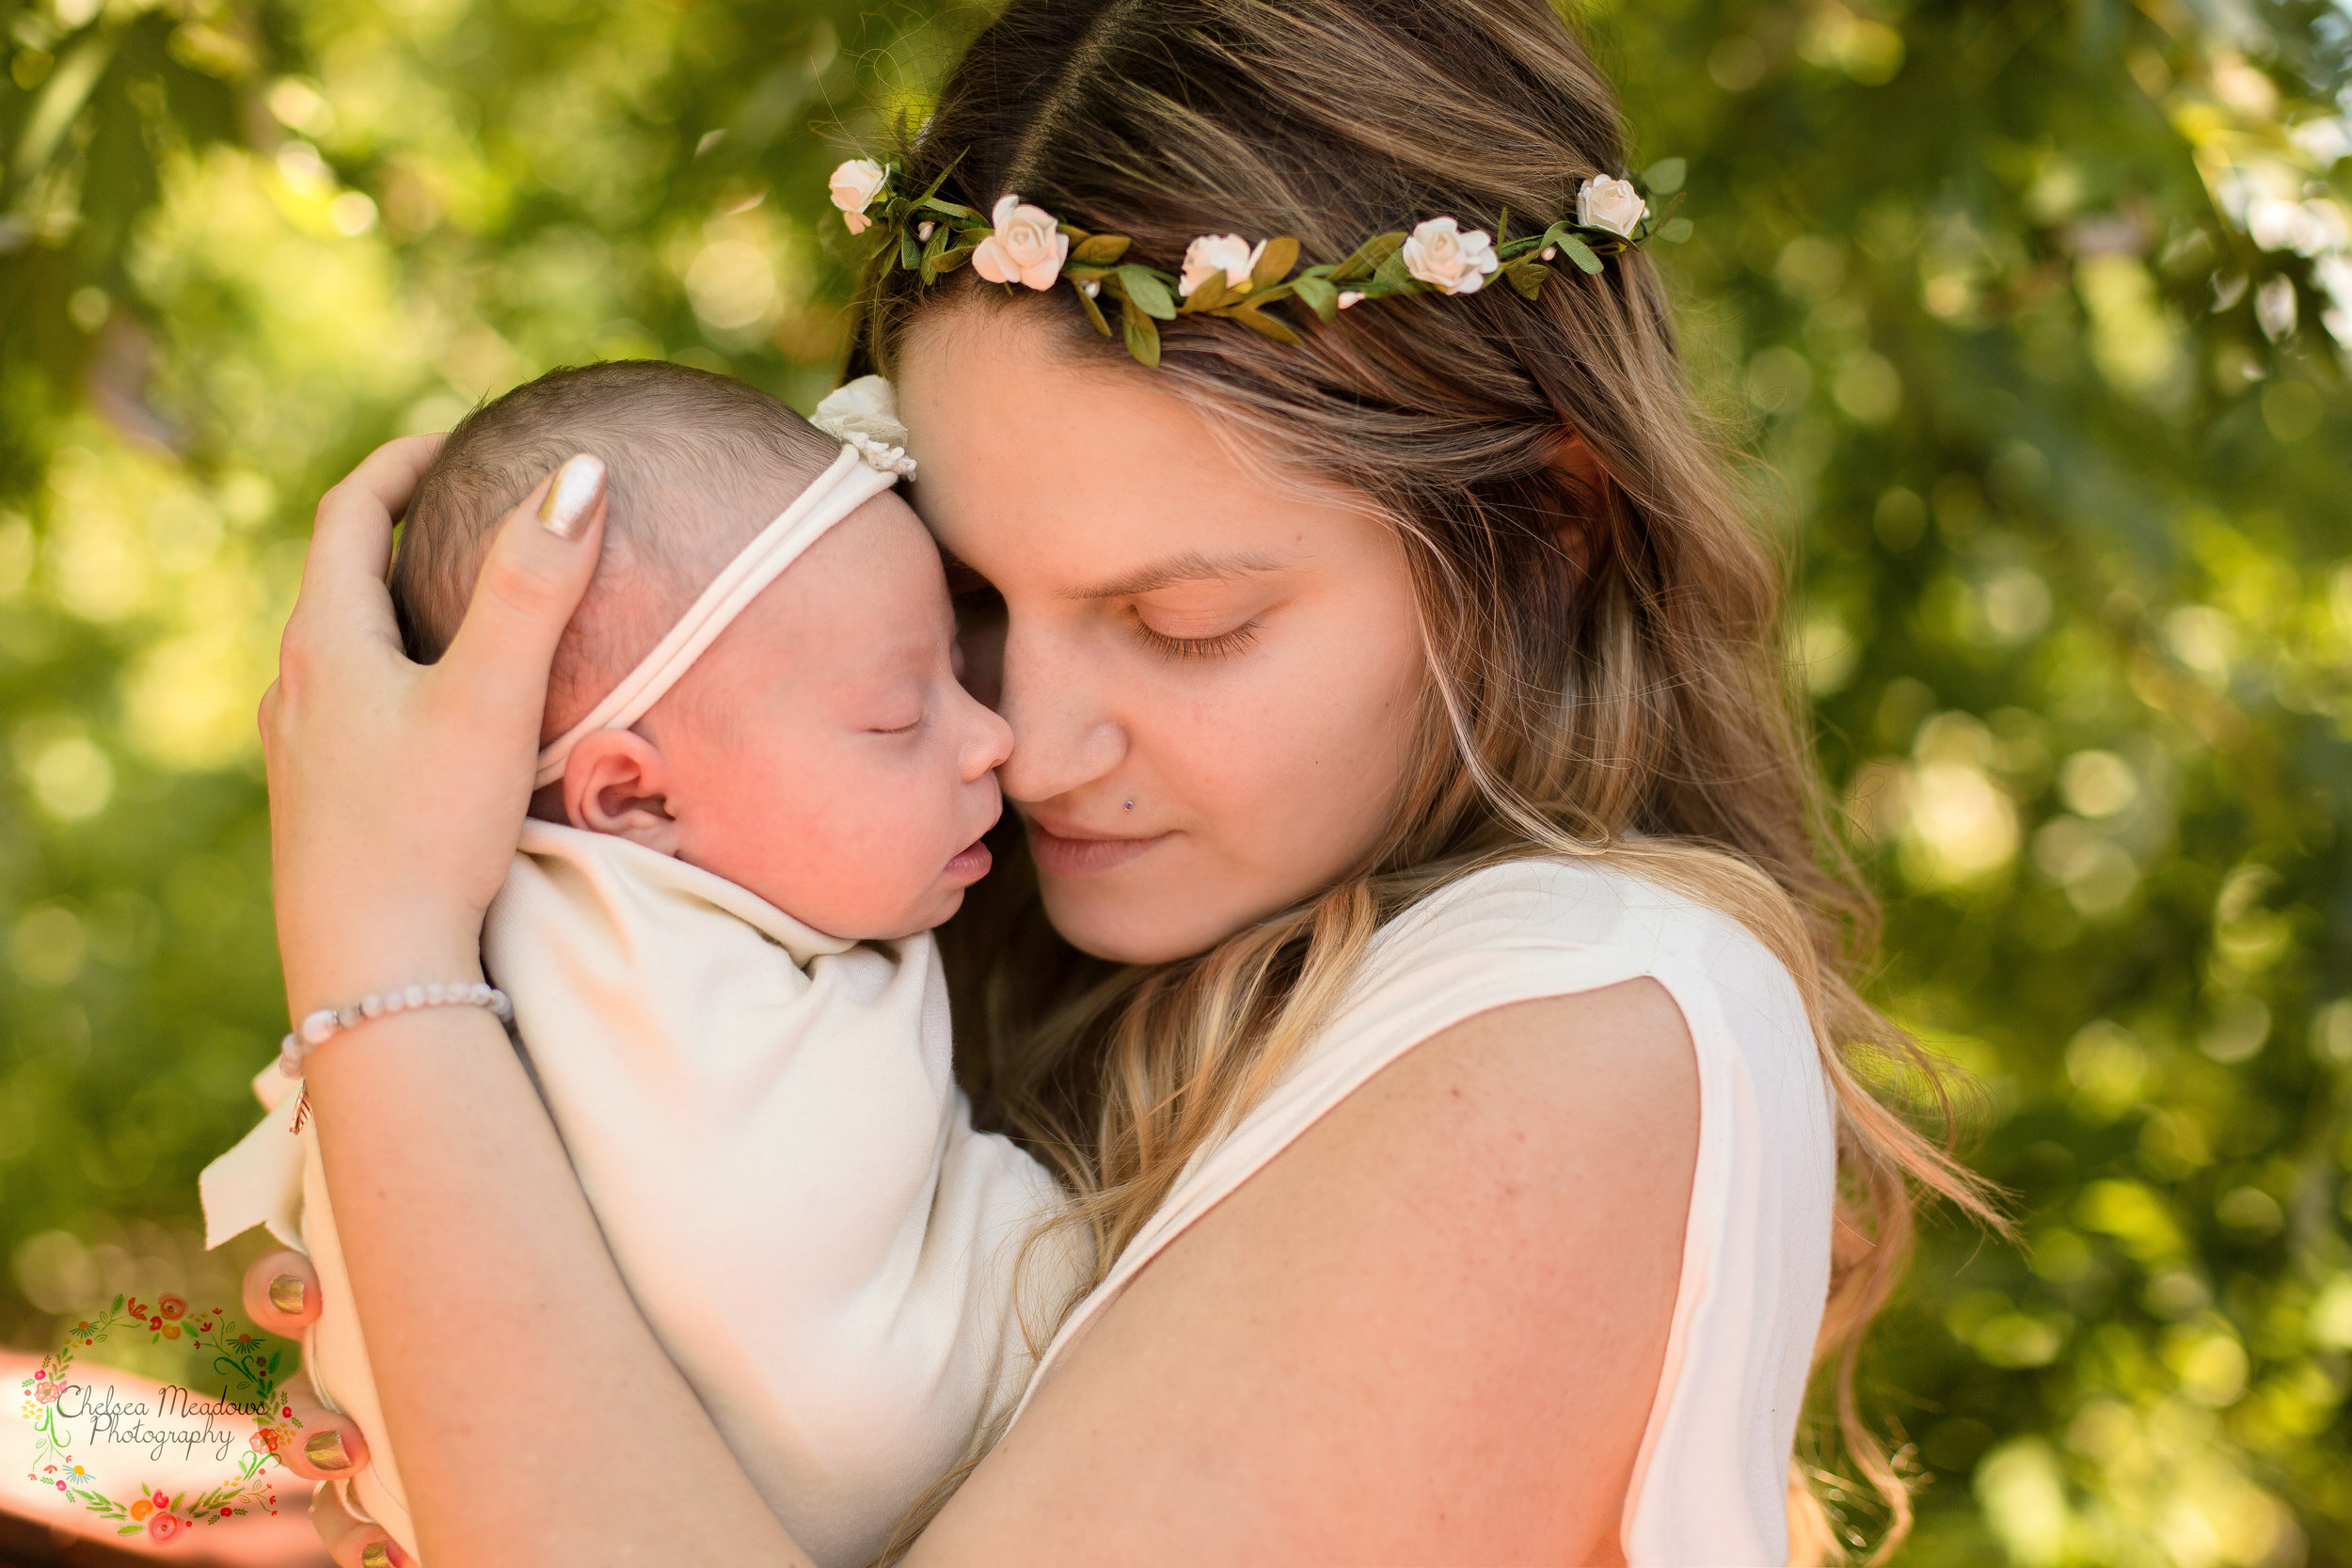 Ella Newborn Photos - Nashville Newborn Photographer - Chelsea Meadows Photography (83)-2.jpg